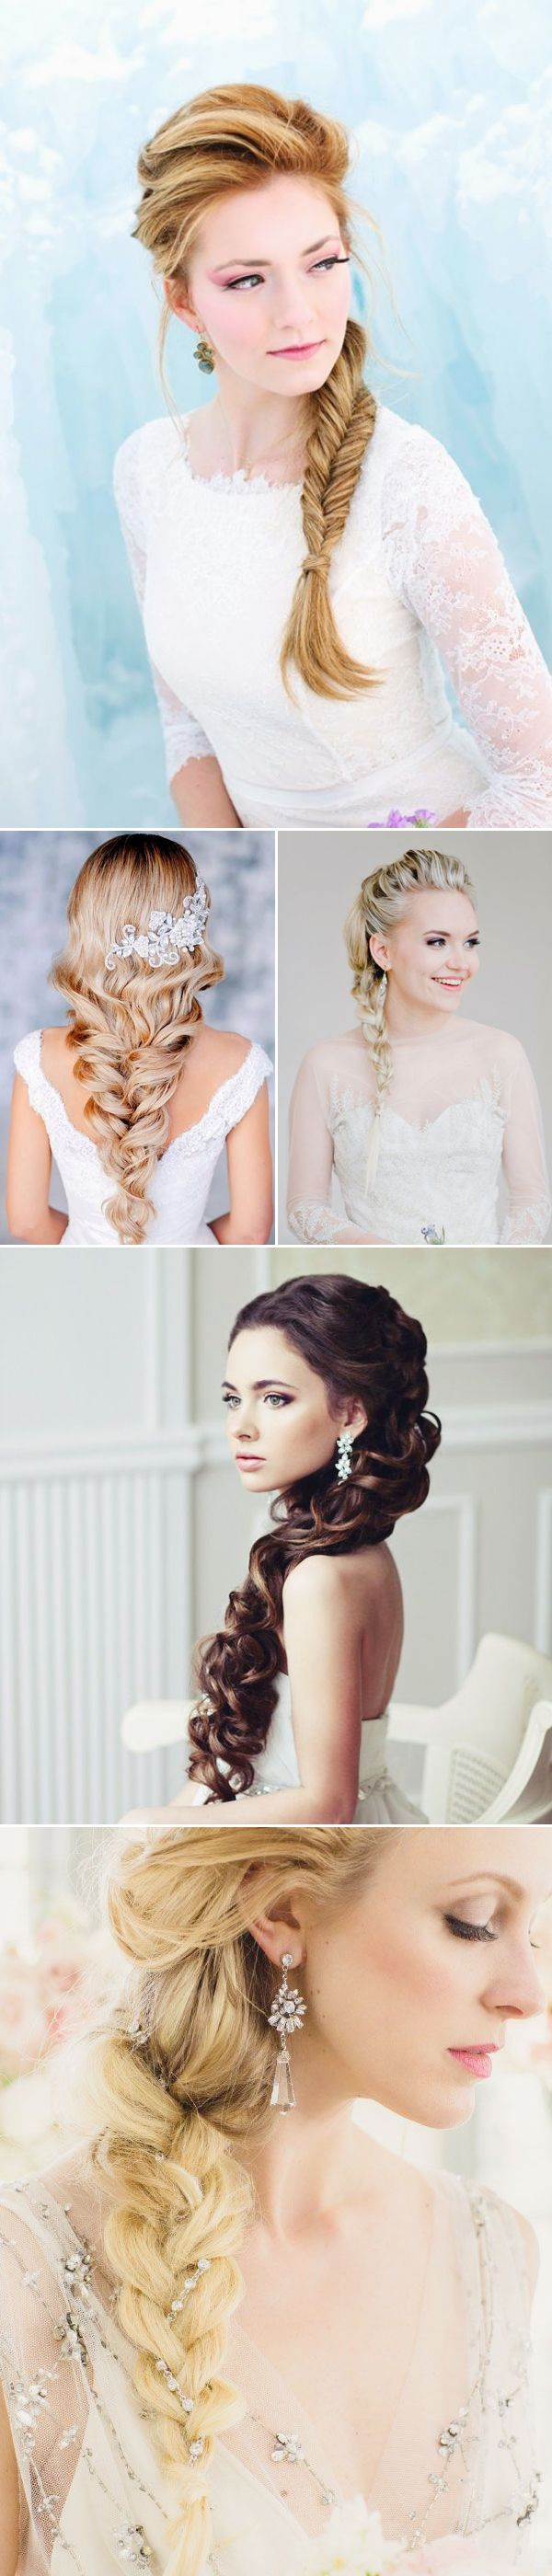 22 Beautiful Winter and Frozen-Inspired Hairstyles - Frozen-inspired!